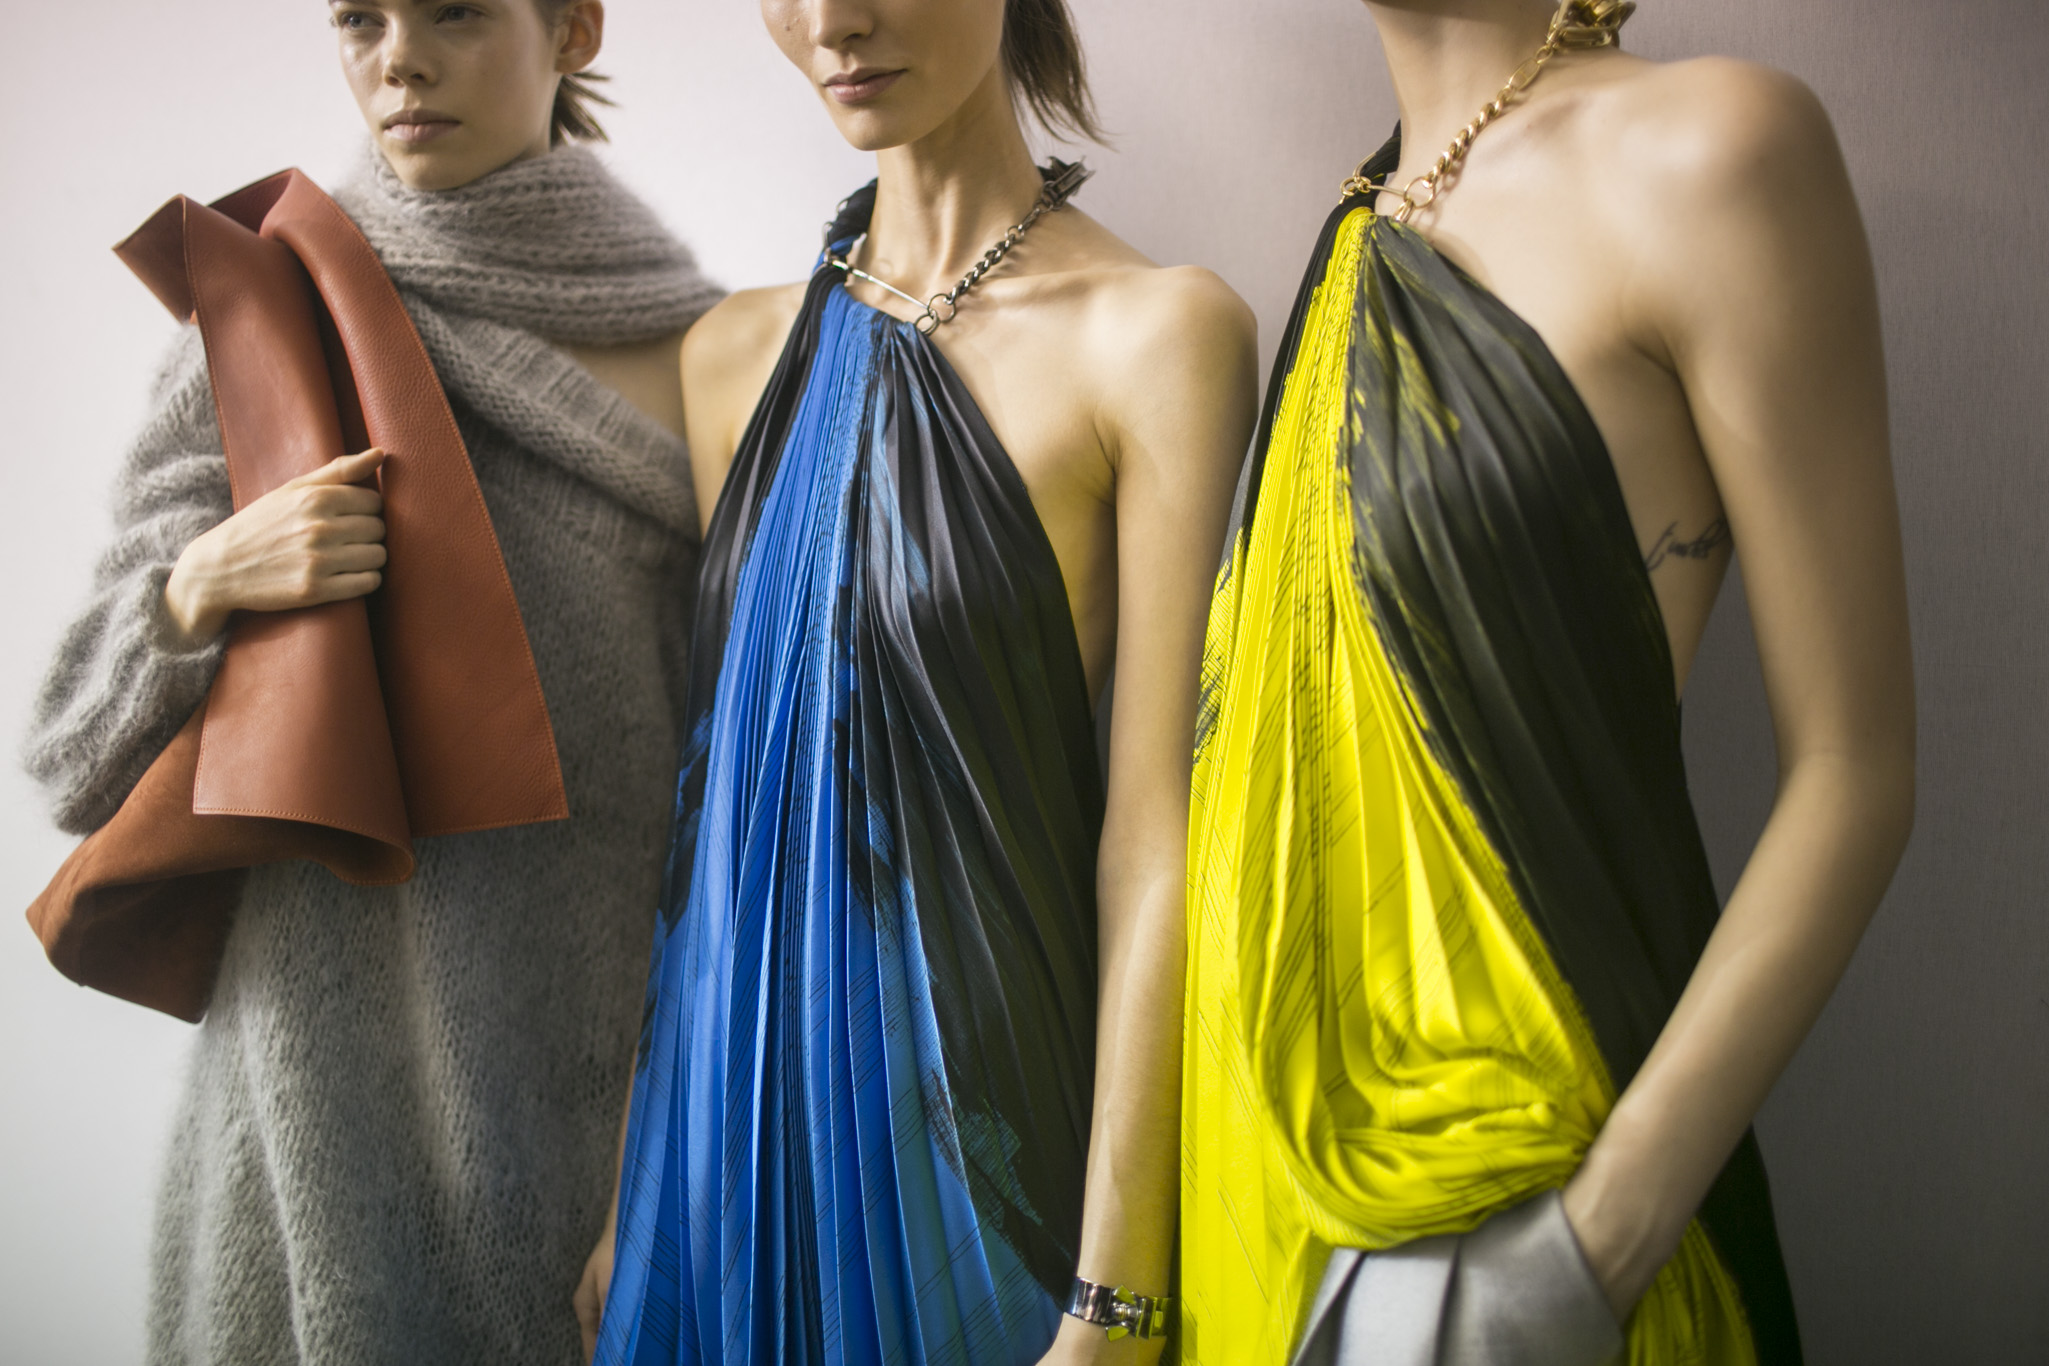 Backstage at Poiret RTW Fall 2018